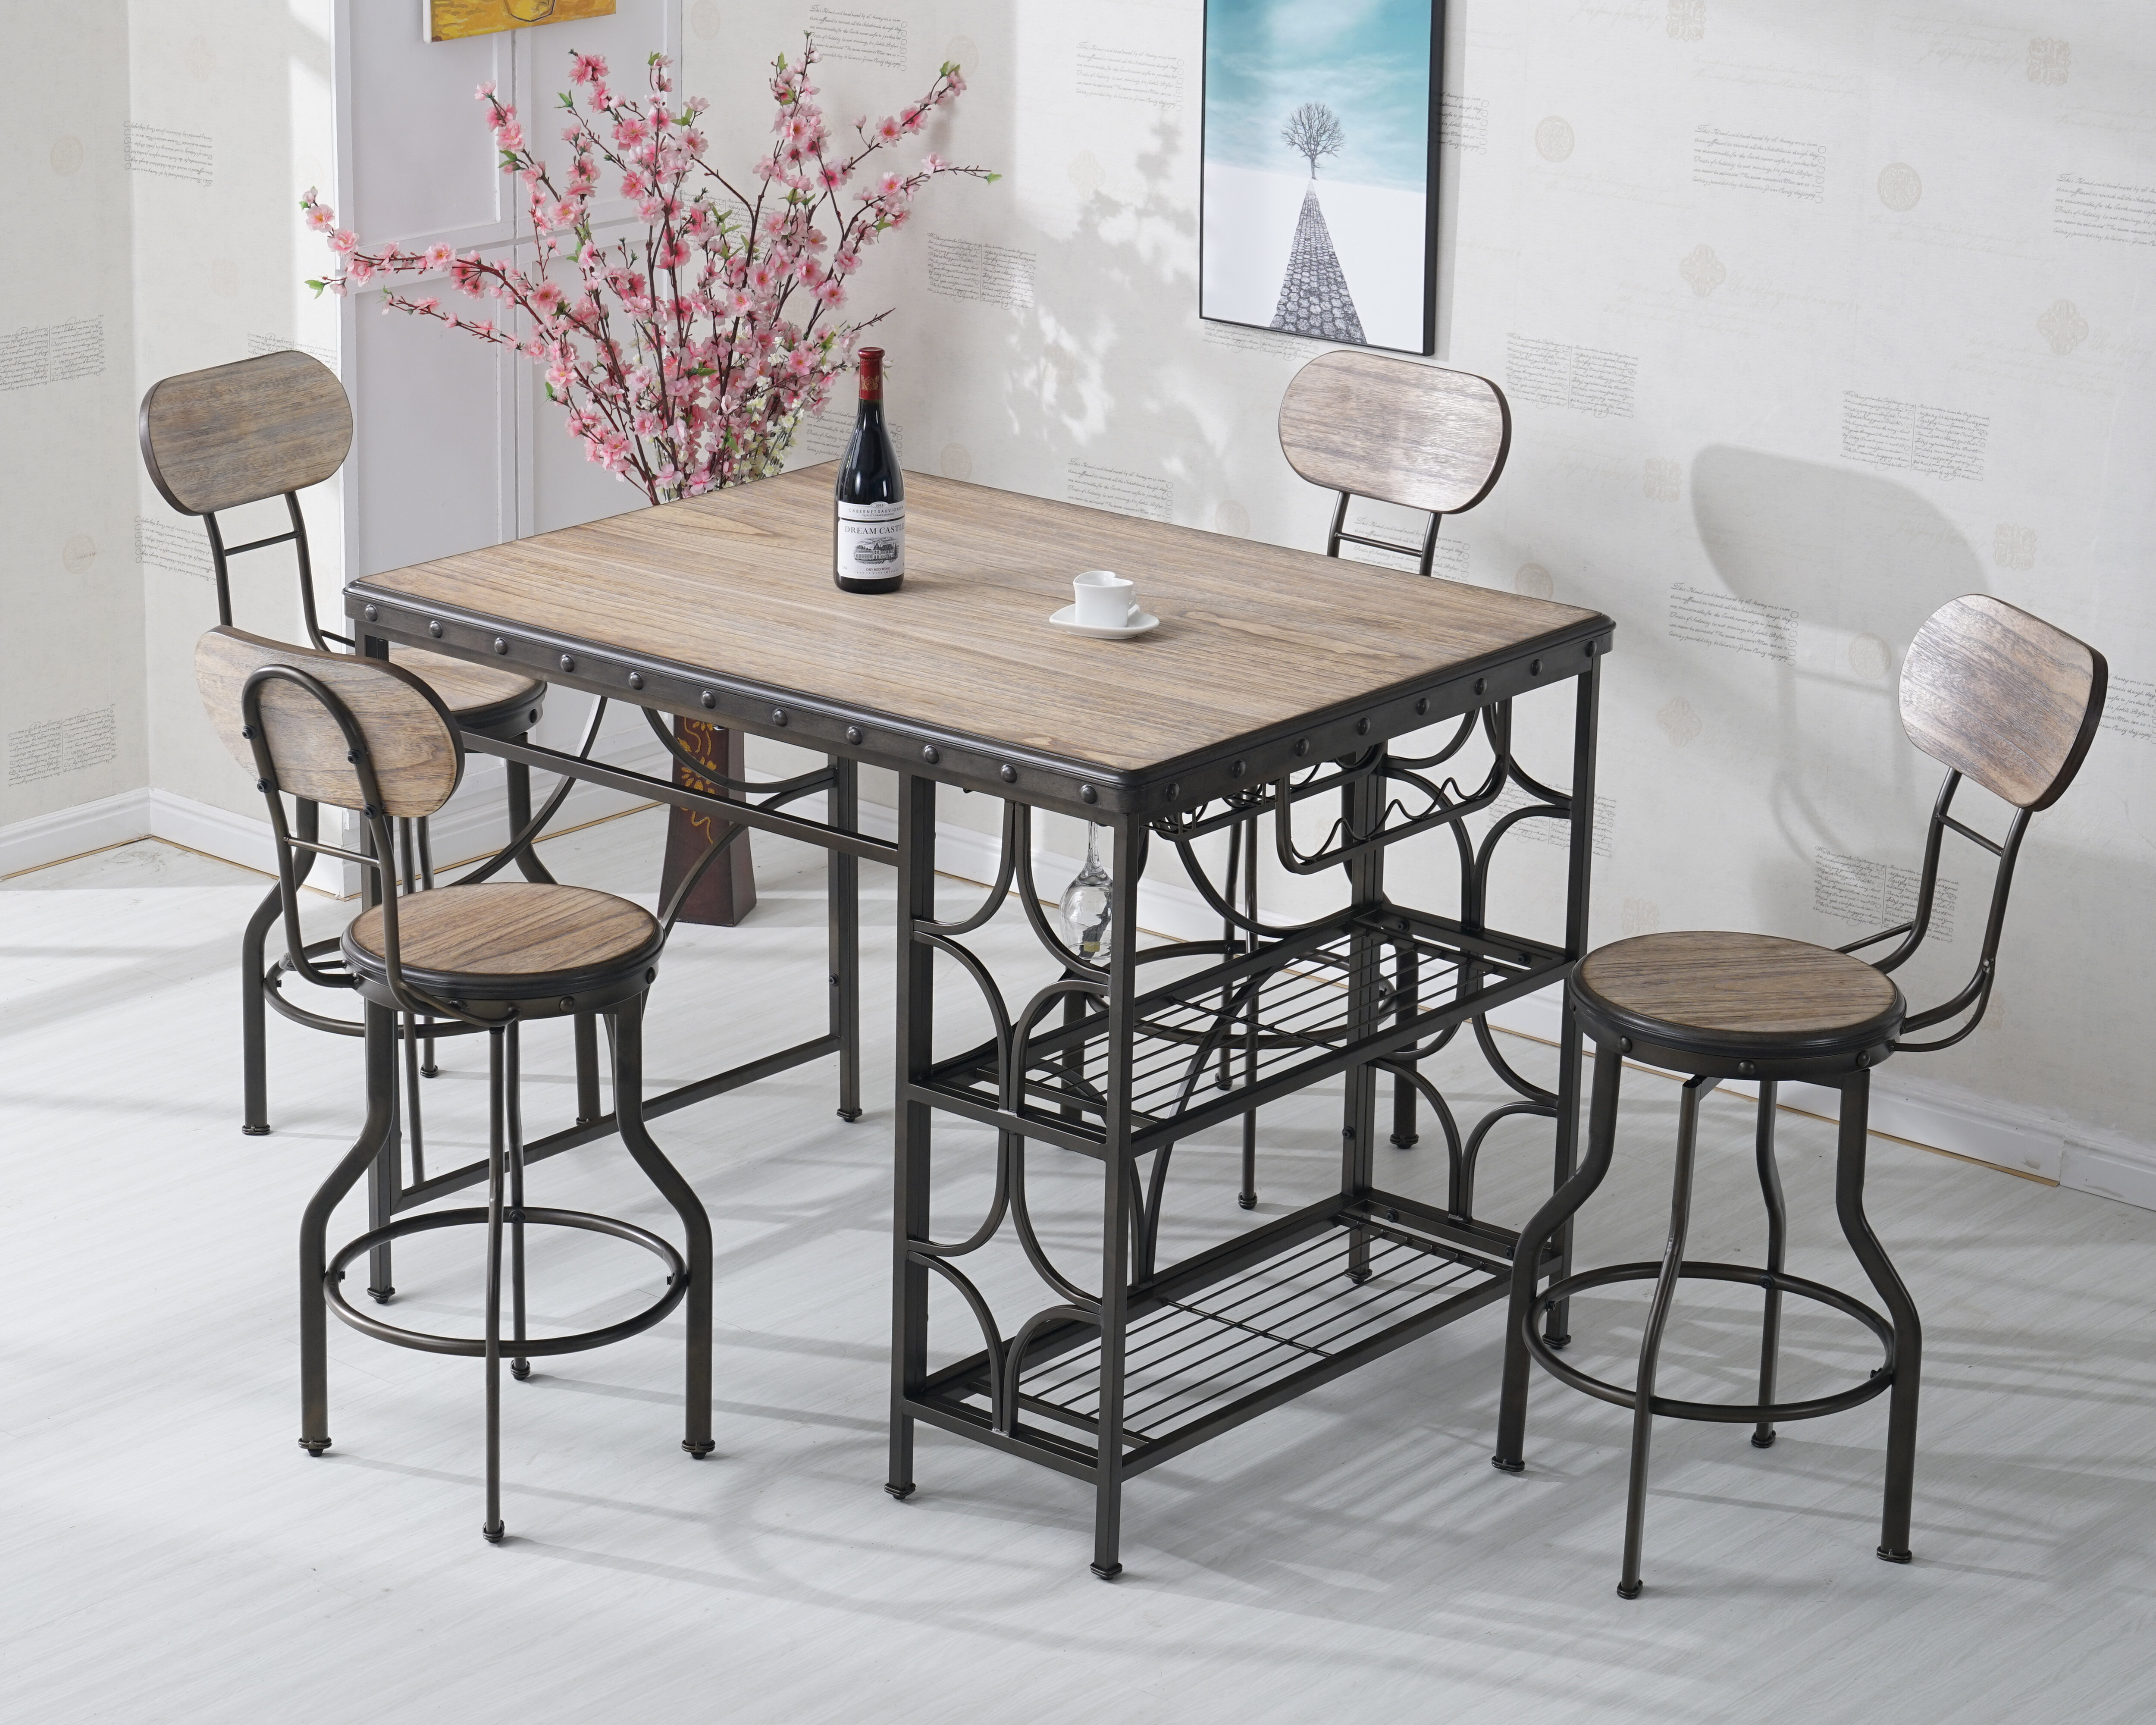 Rosas 5 Piece Dinning Set Throughout 2018 Rossi 5 Piece Dining Sets (Image 11 of 20)